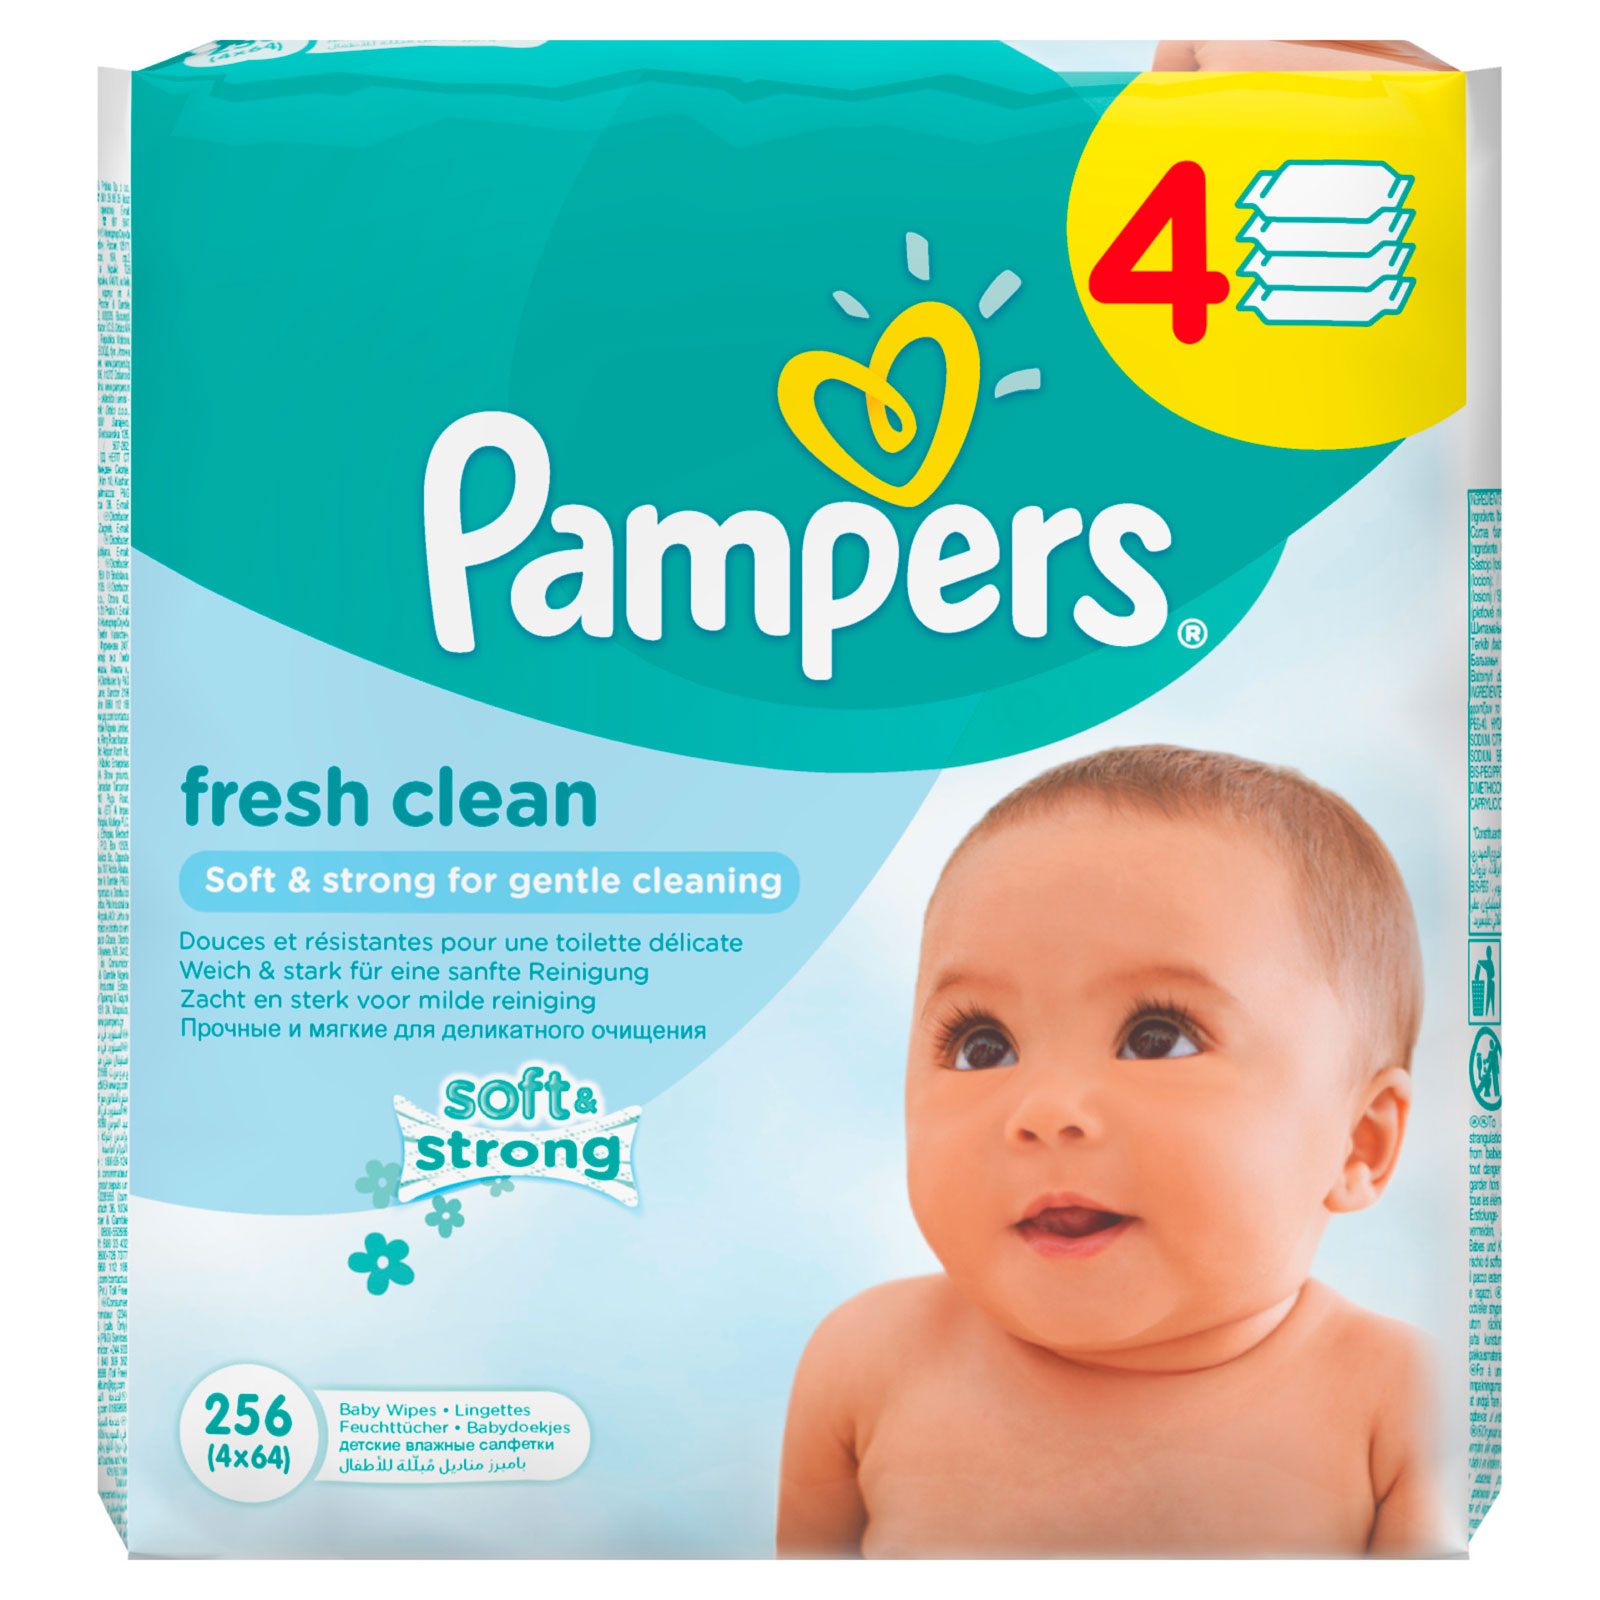 �������� ������� Pampers Baby Fresh Clean ������� ���� (4 � 64 ��) 256 ��